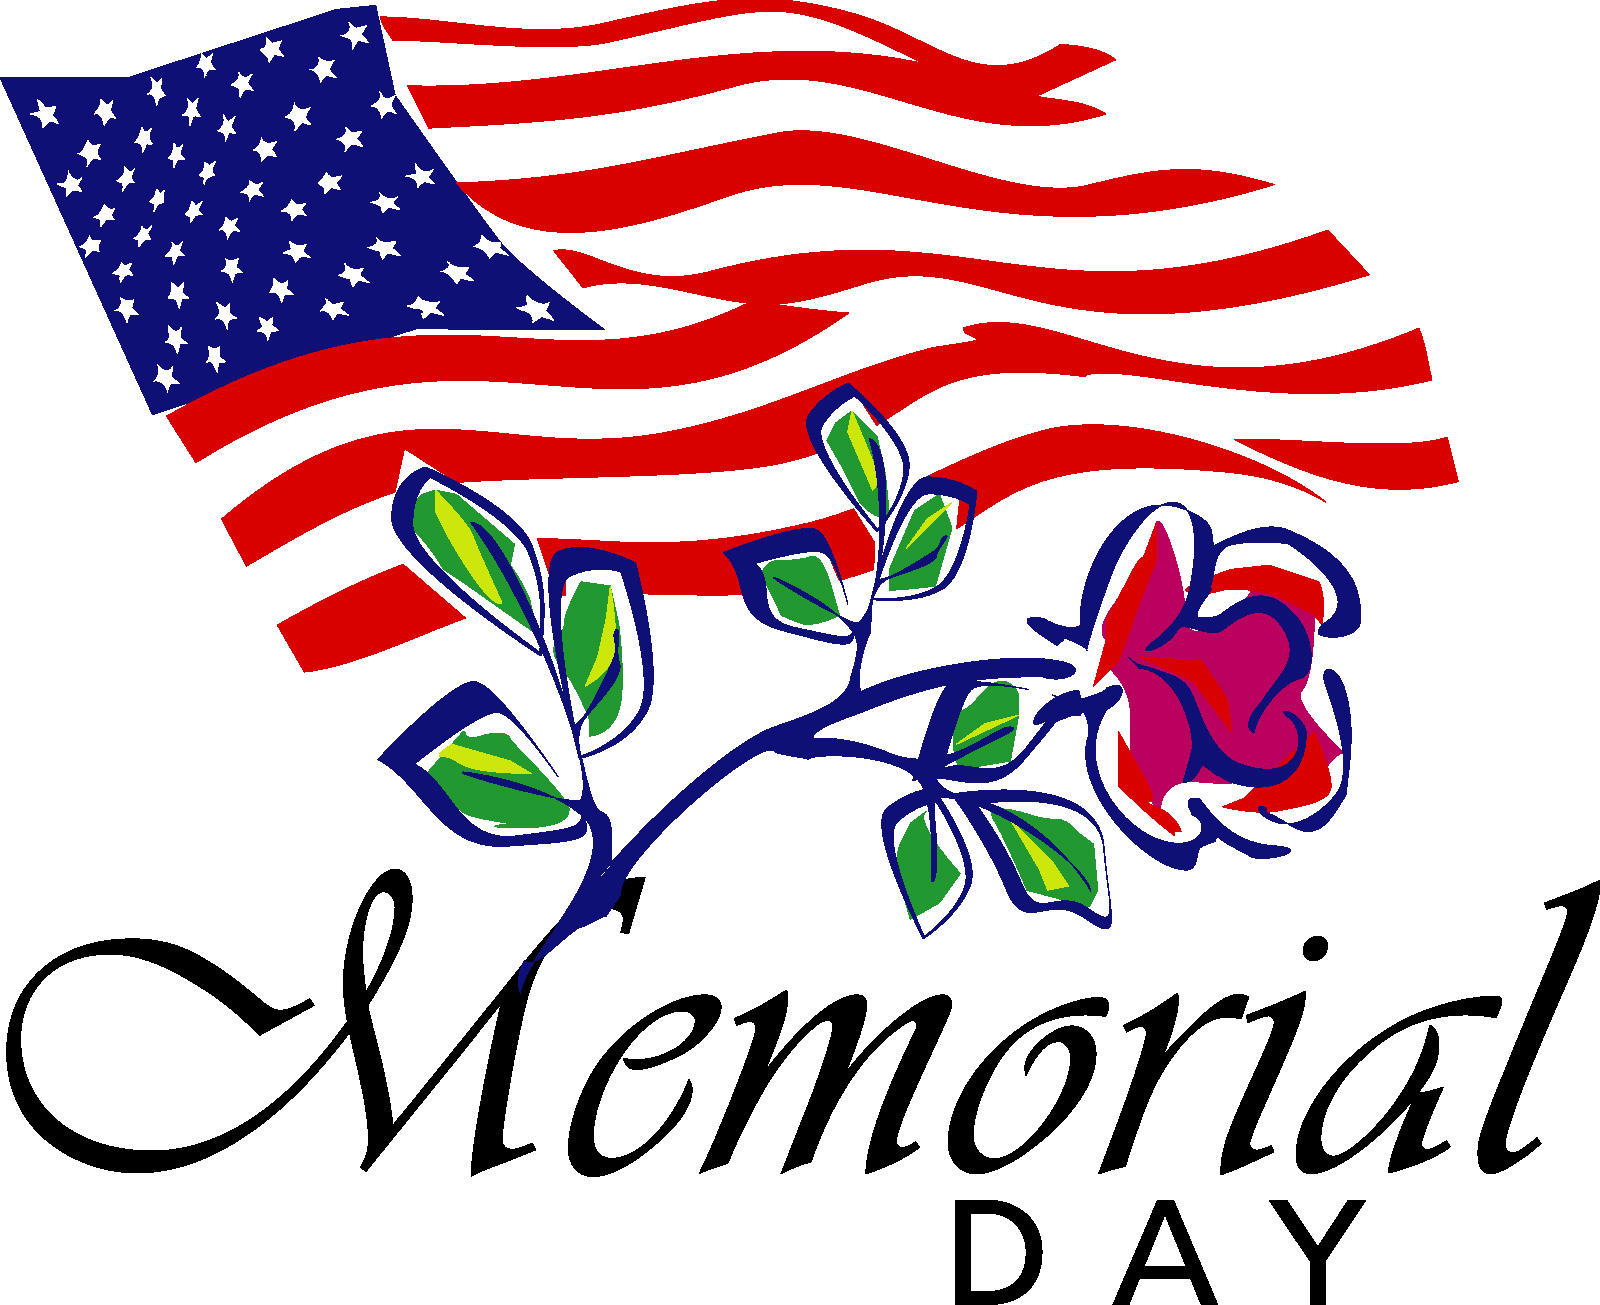 ATTENTION STUDENTS! In observance of the Memorial Day Holiday, we.